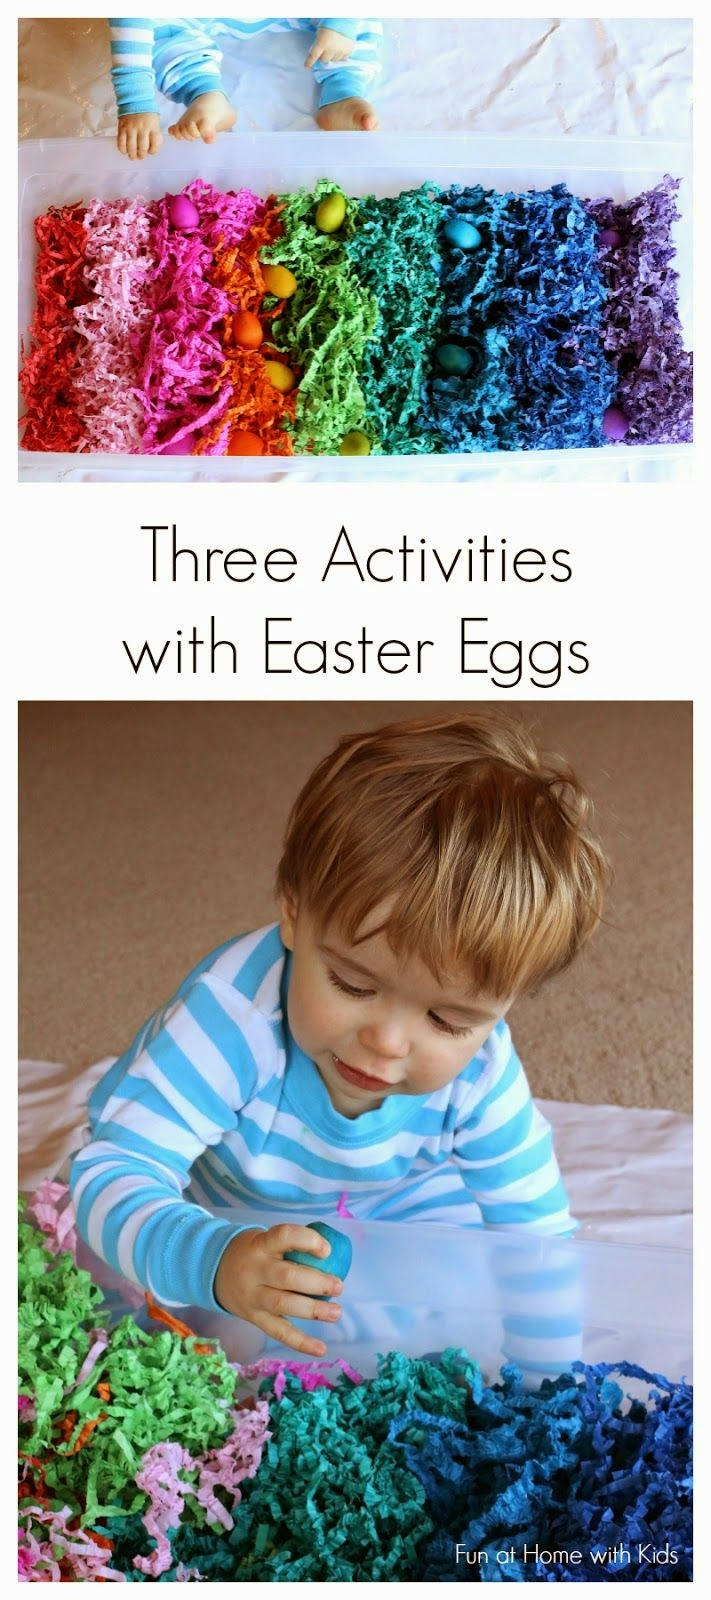 http://www.funathomewithkids.com/2014/03/rainbow-wooden-easter-egg-activities.html